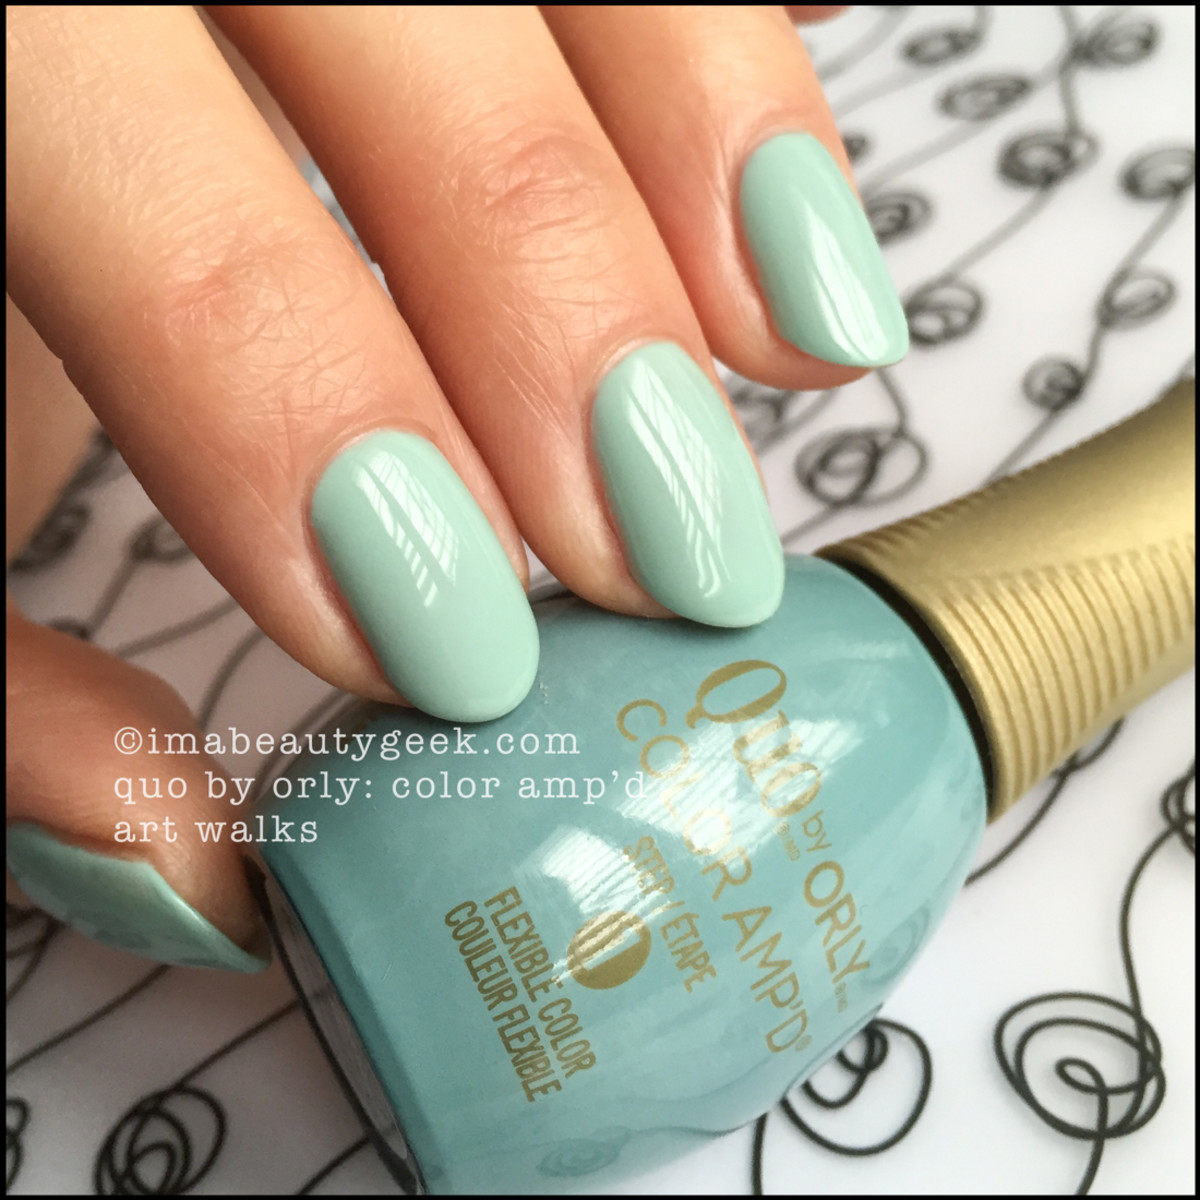 Quo Color Ampd Art Walks_Orly Epix Cameo Swatch